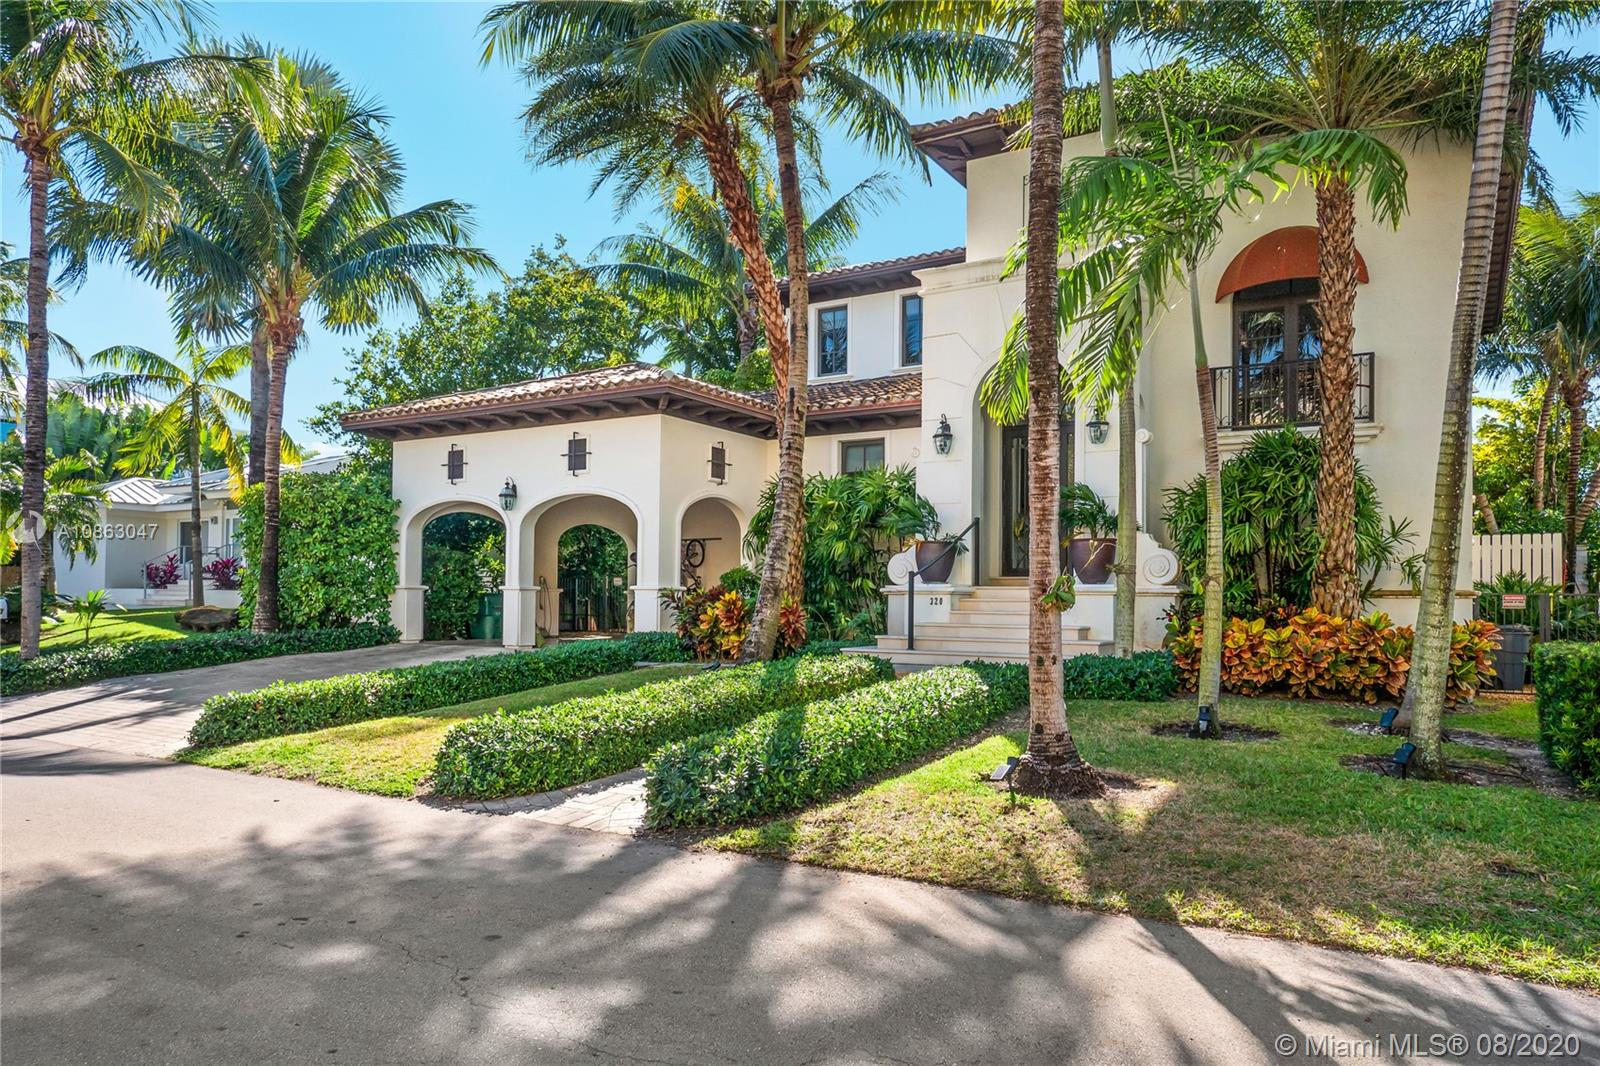 Tropical Isle Homes - 320 Palmwood Ln, Key Biscayne, FL 33149